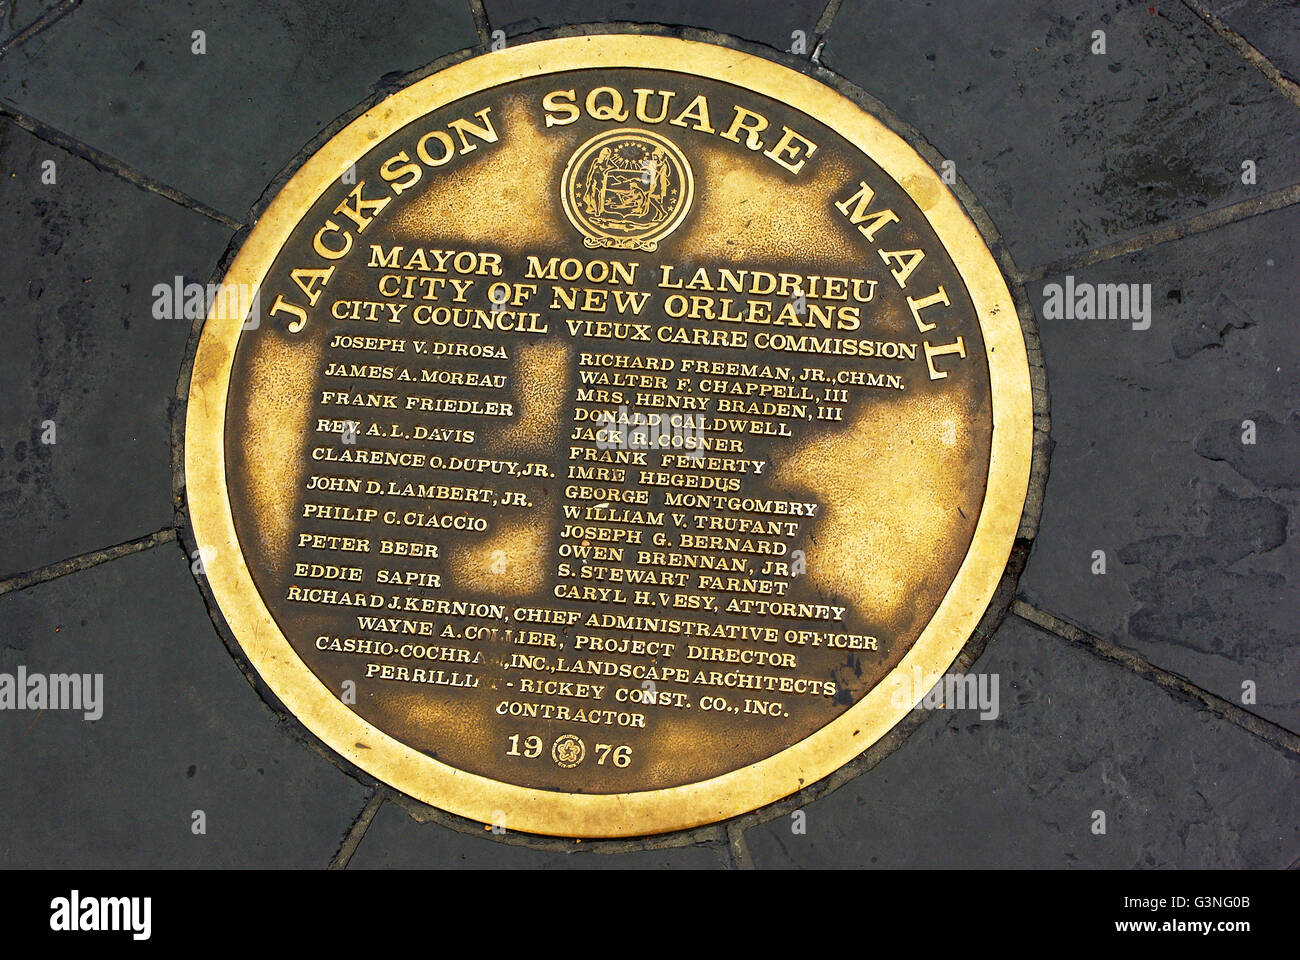 Brass plate on sidewalk outside Jackson Square Mall in New Orleans - Stock Image